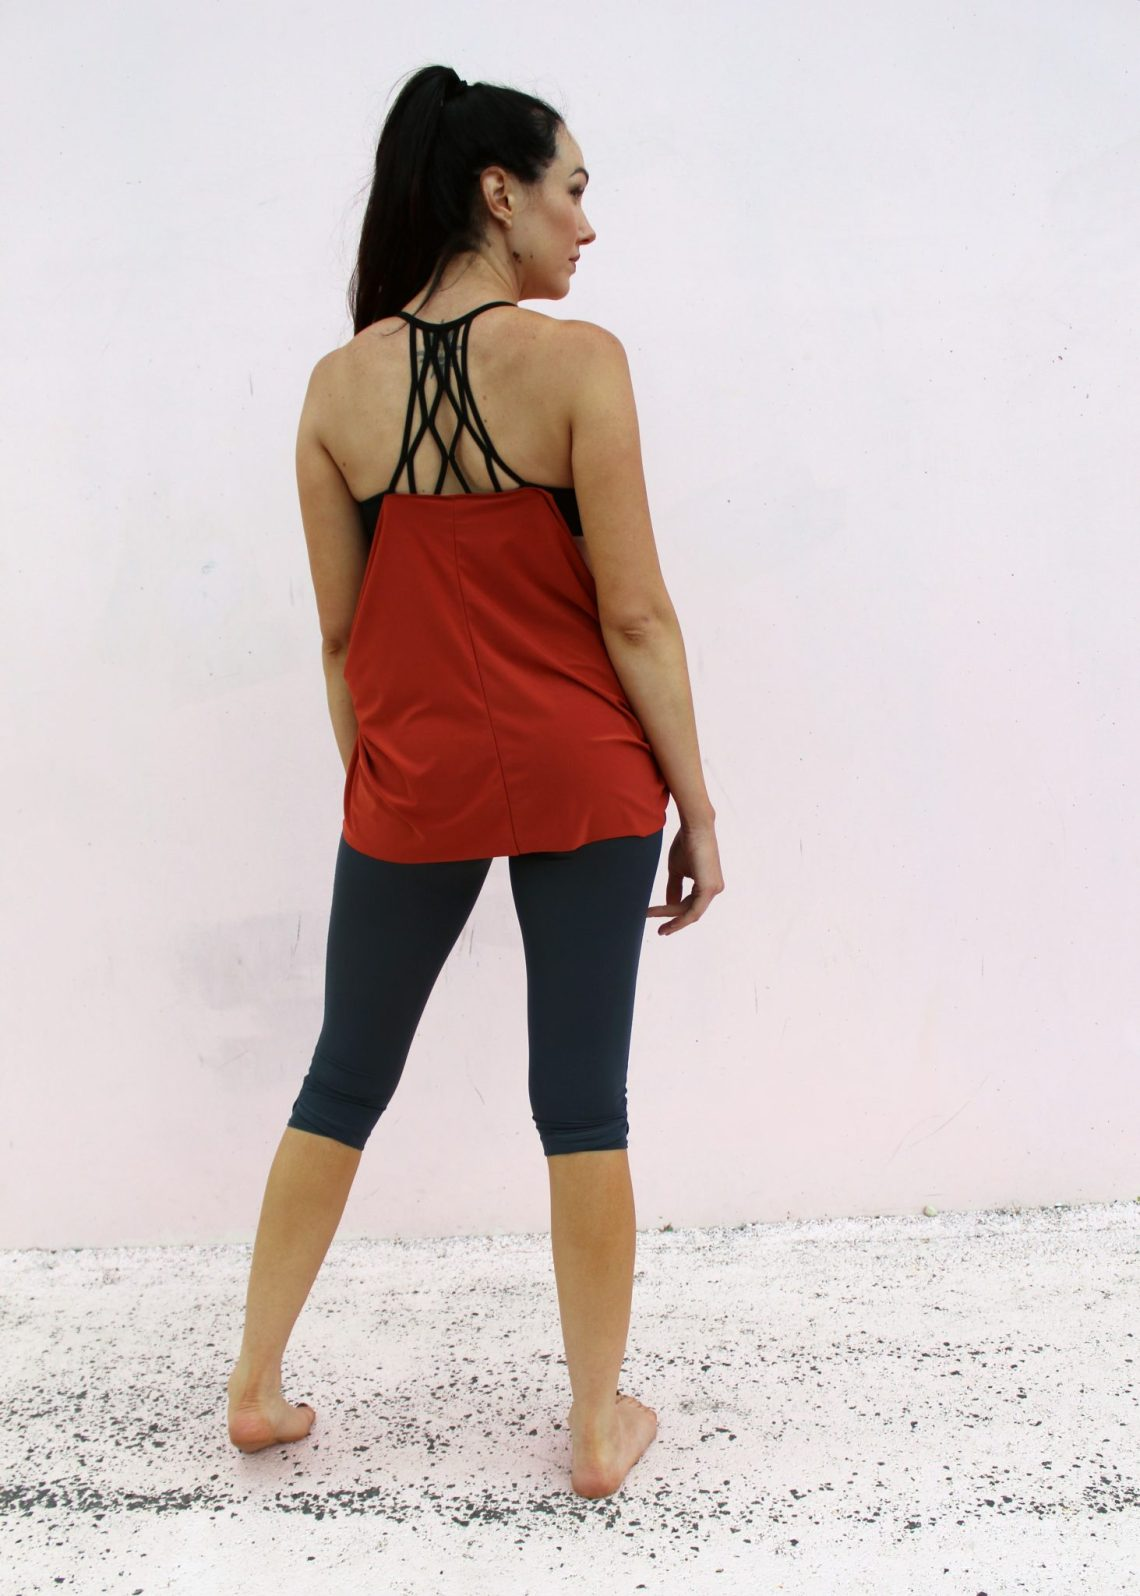 diy workout shirt tutorial . lulu lemon knockoff .